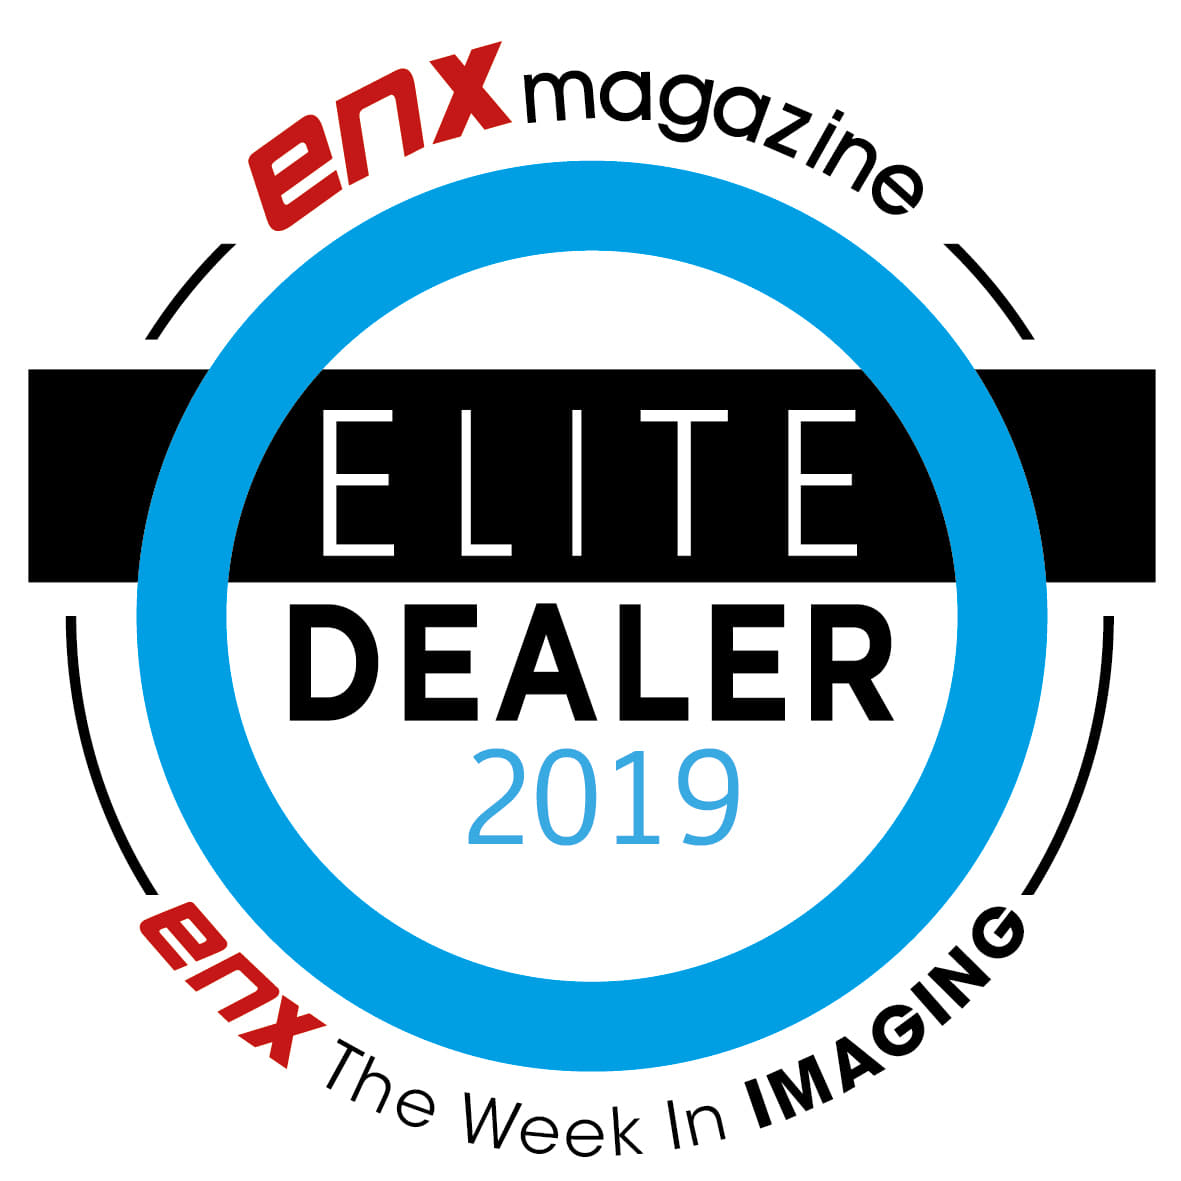 ENX magazine elite dealer